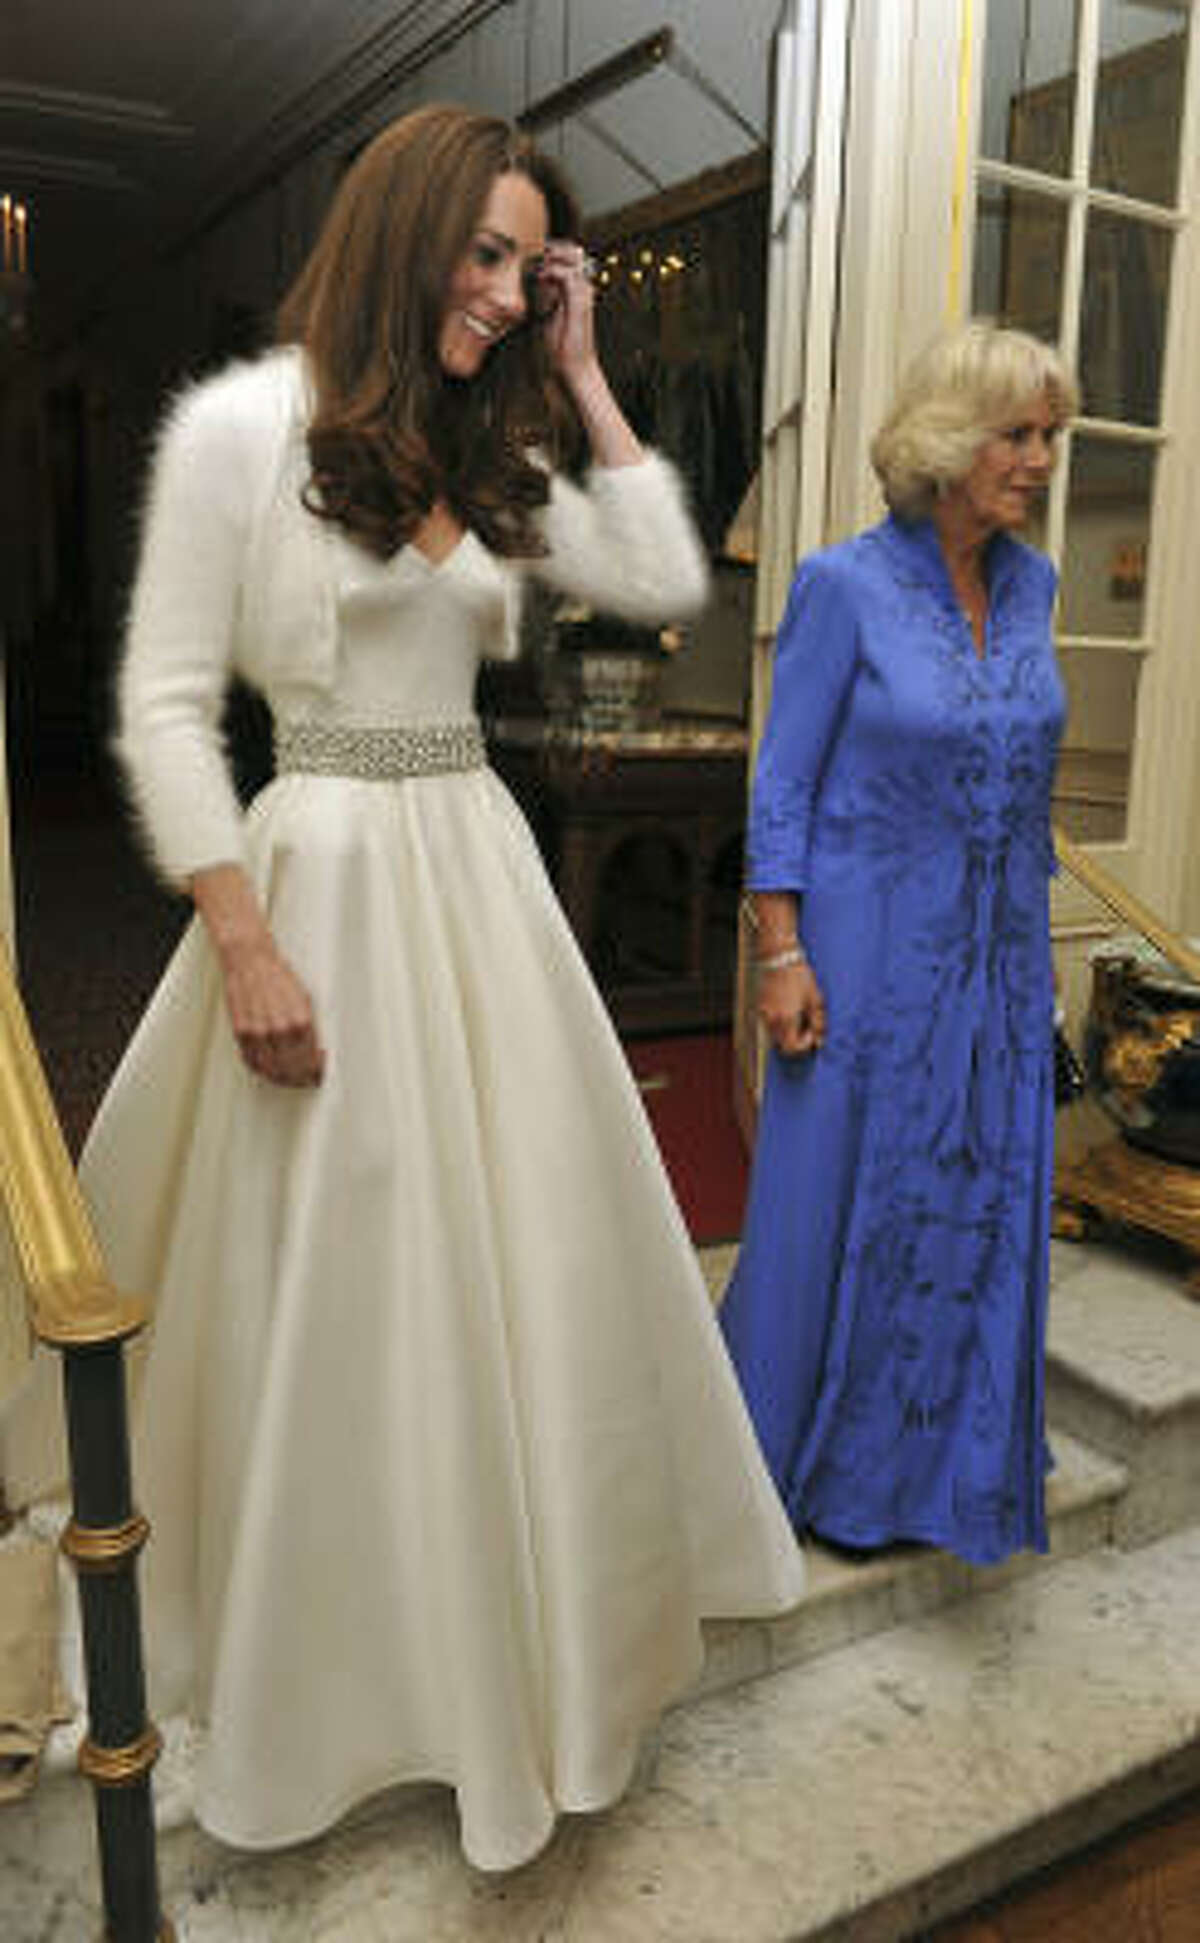 Meanwhile, Kate, the Duchess of Cambridge, dons an evening gown for the bash.